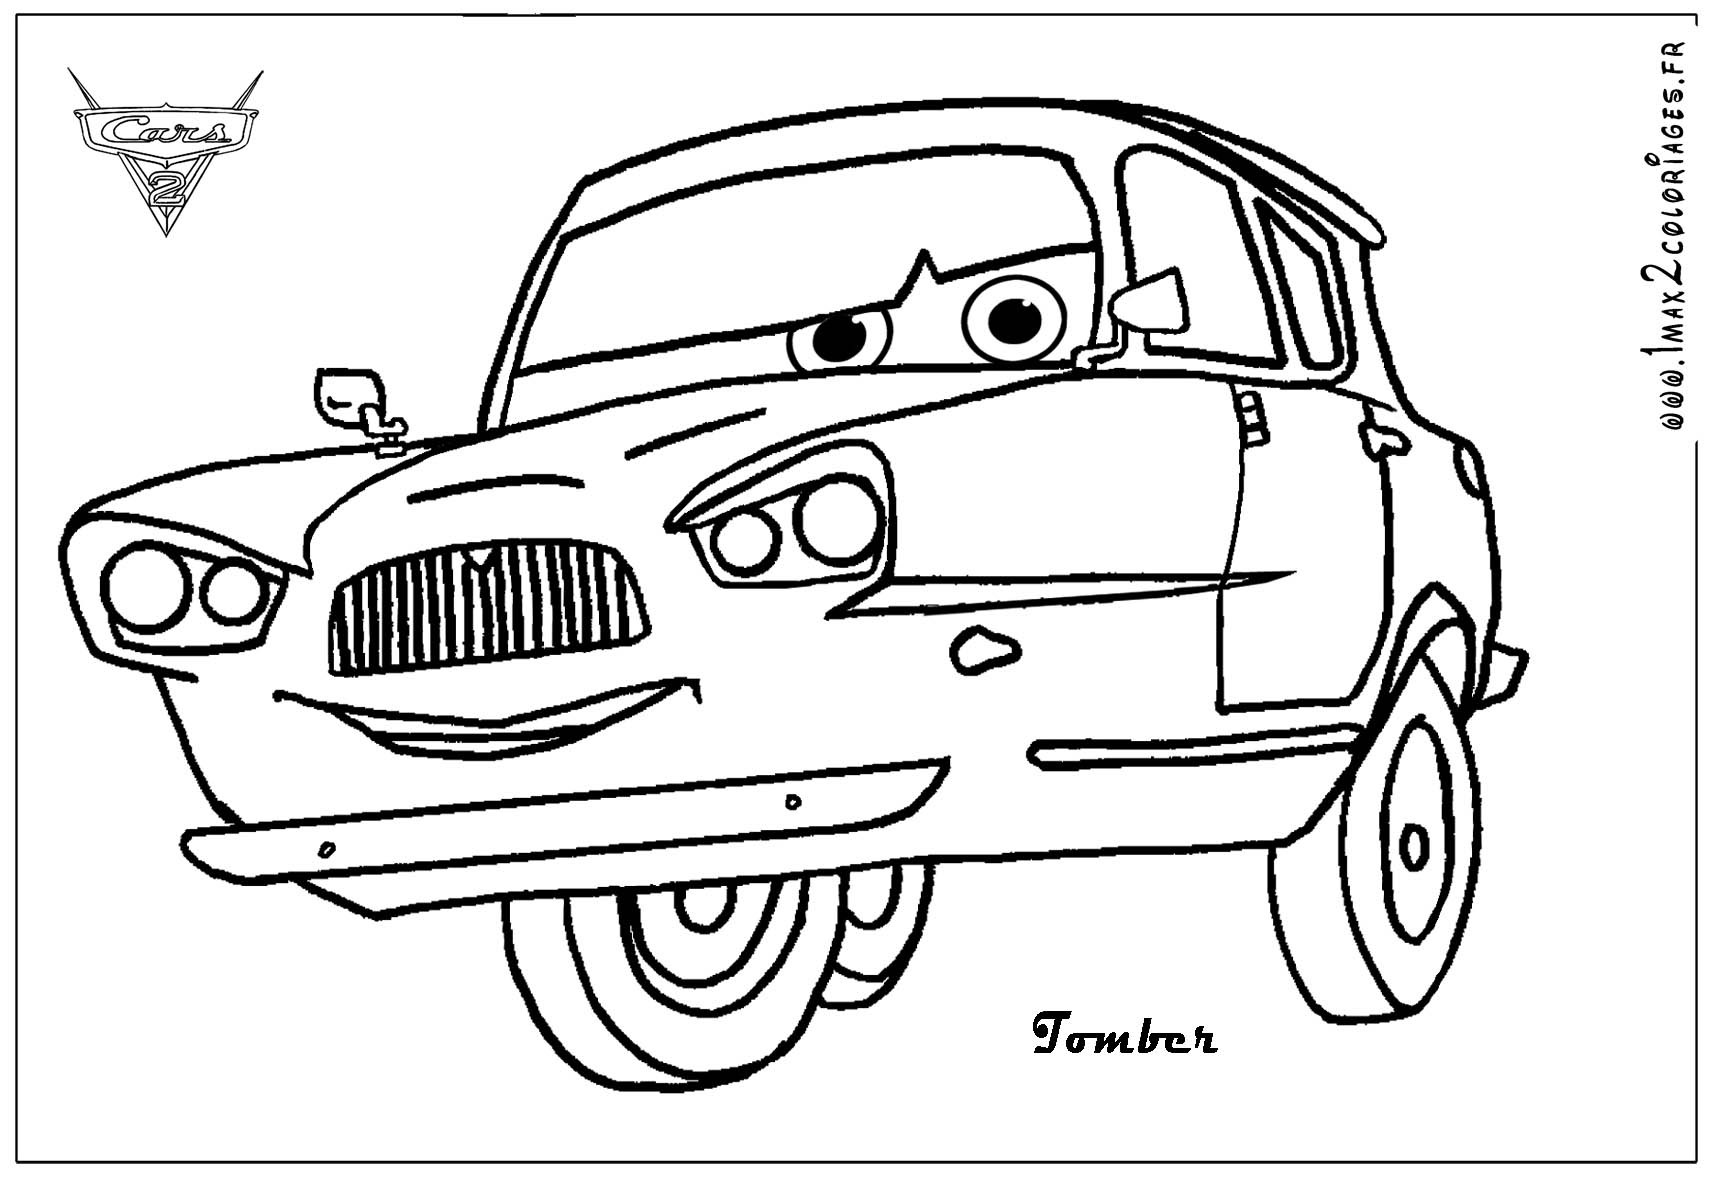 Free Coloring Pages Of Cars 2  Free Printable Color Pages For Adults Cars 2 The Art Jinni